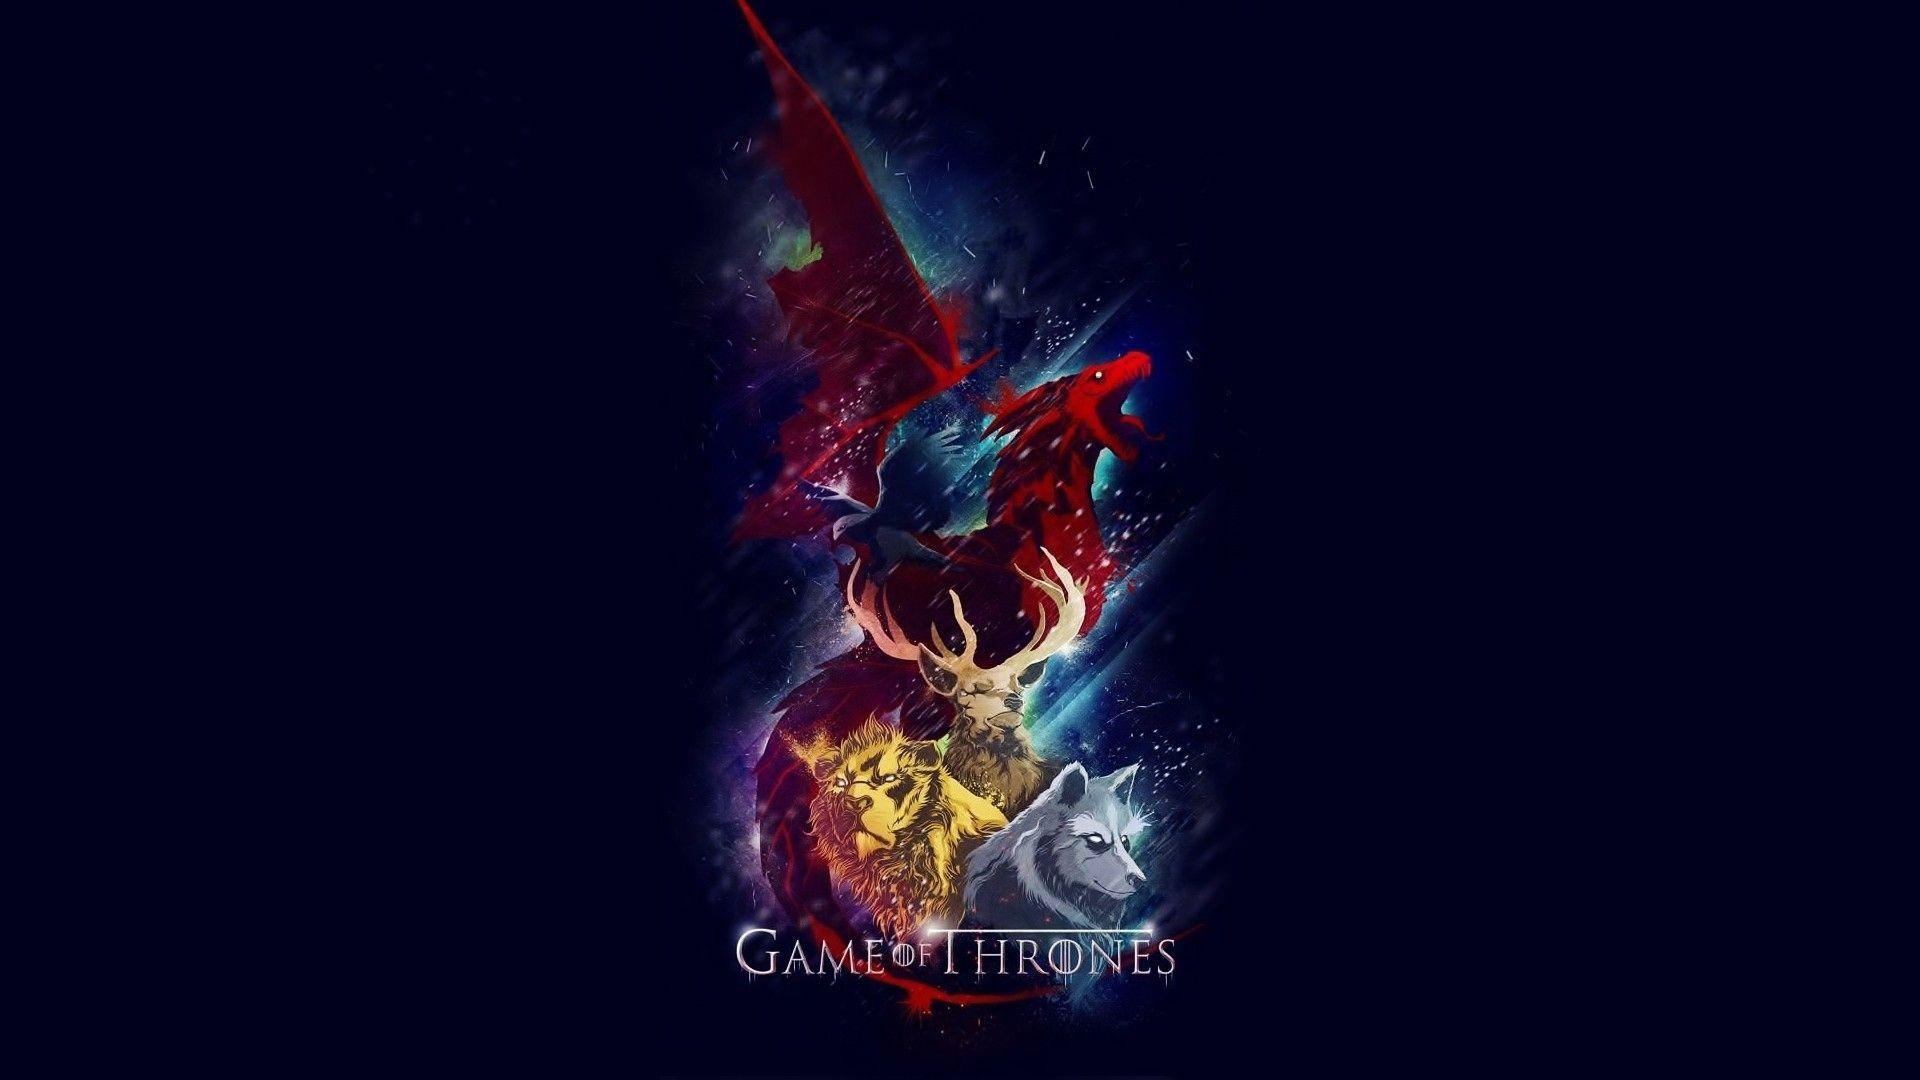 Game of Thrones wallpapers 1920x1080 ·① Download free cool HD